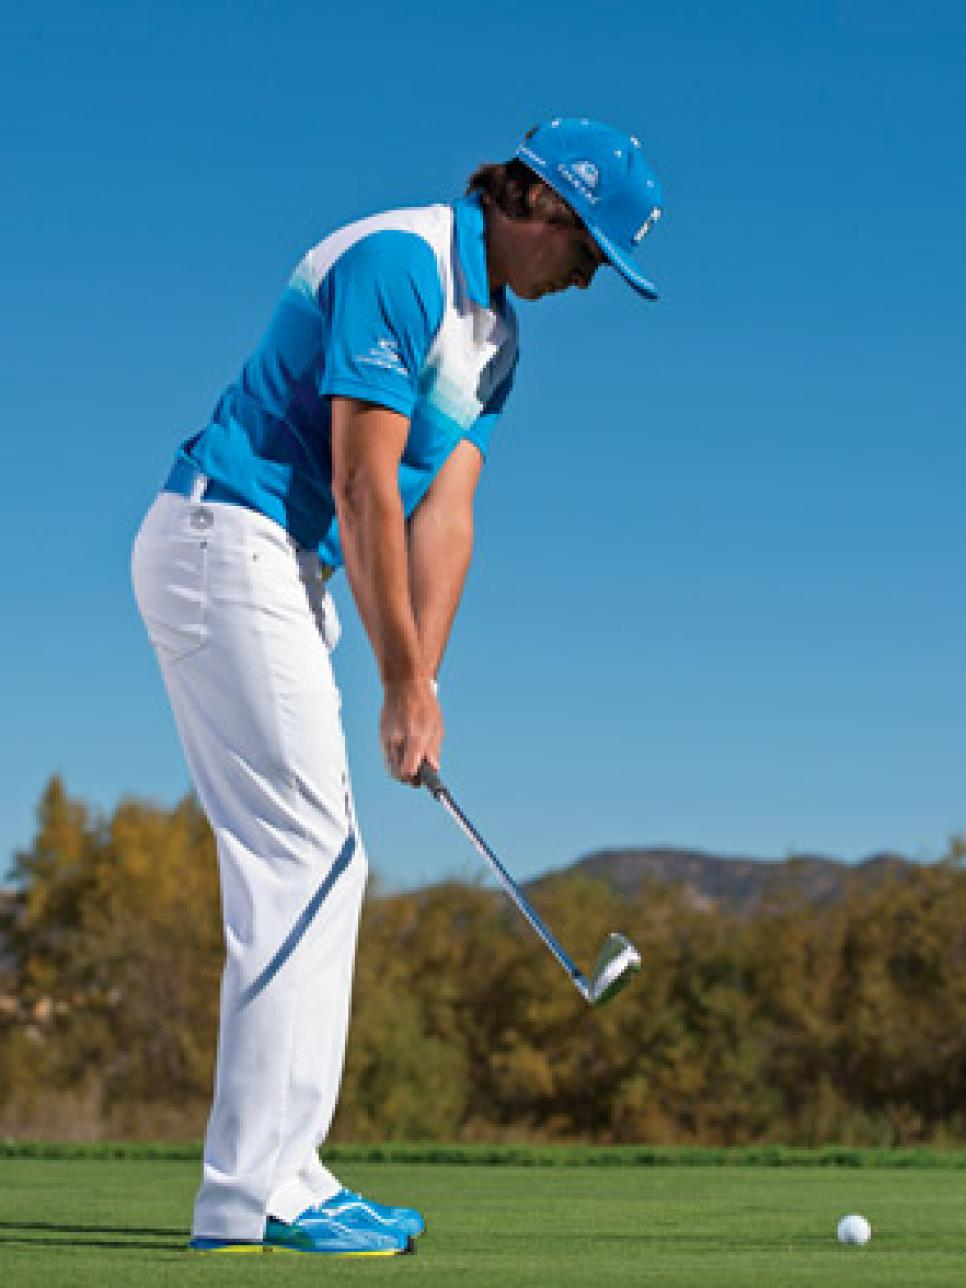 instruction-2013-10-inar02a-rickie-fowler-4-keys-to-go-low.jpg